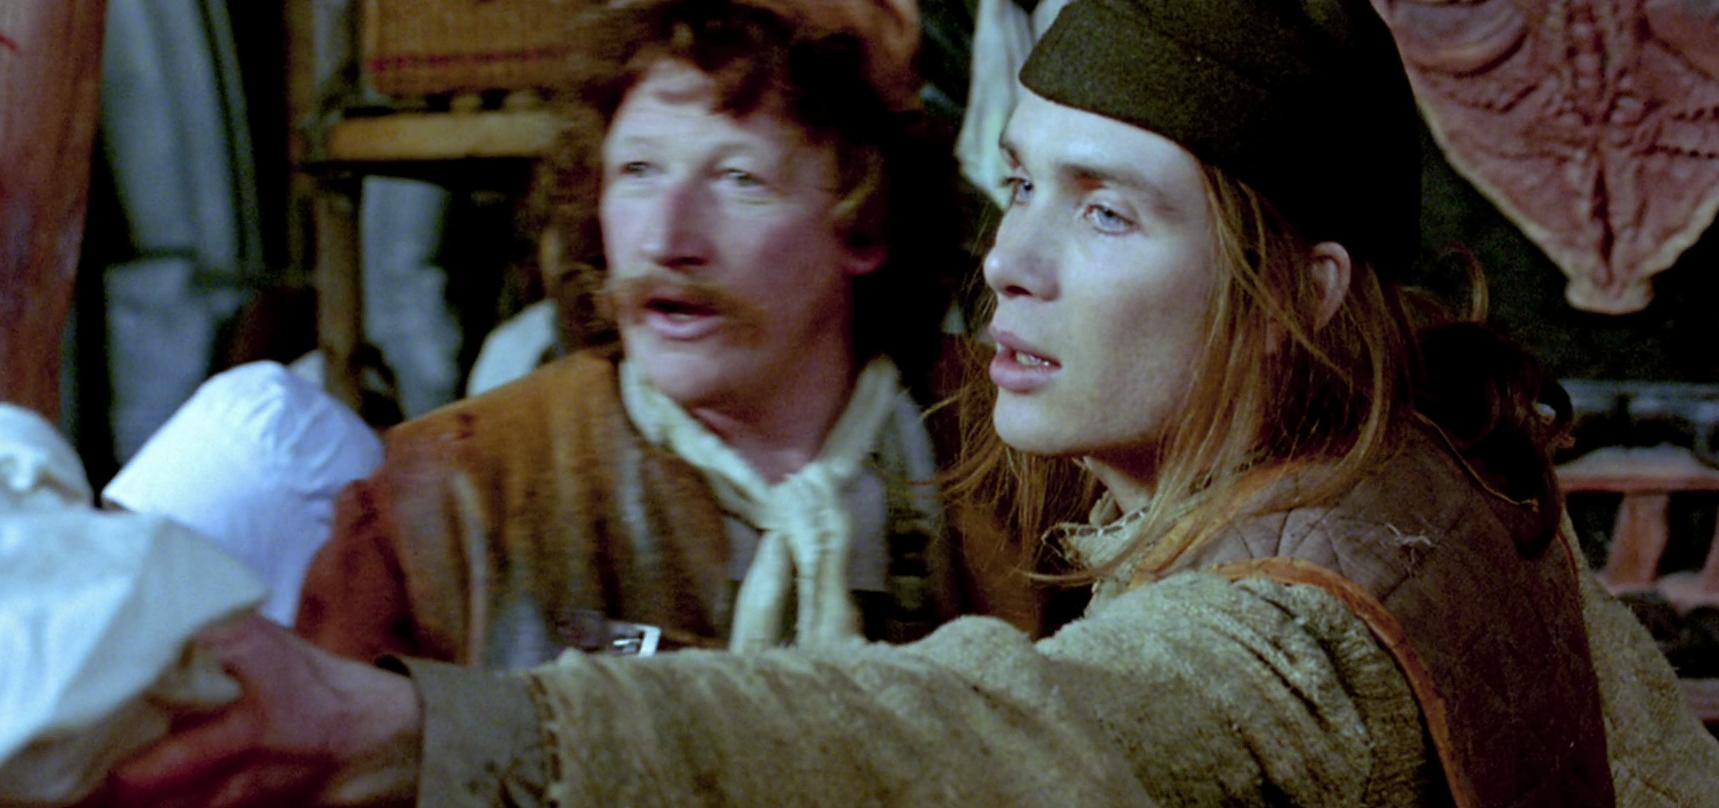 Cillian Murphy and Geoff Bell in Girl with a Pearl Earring (2003)